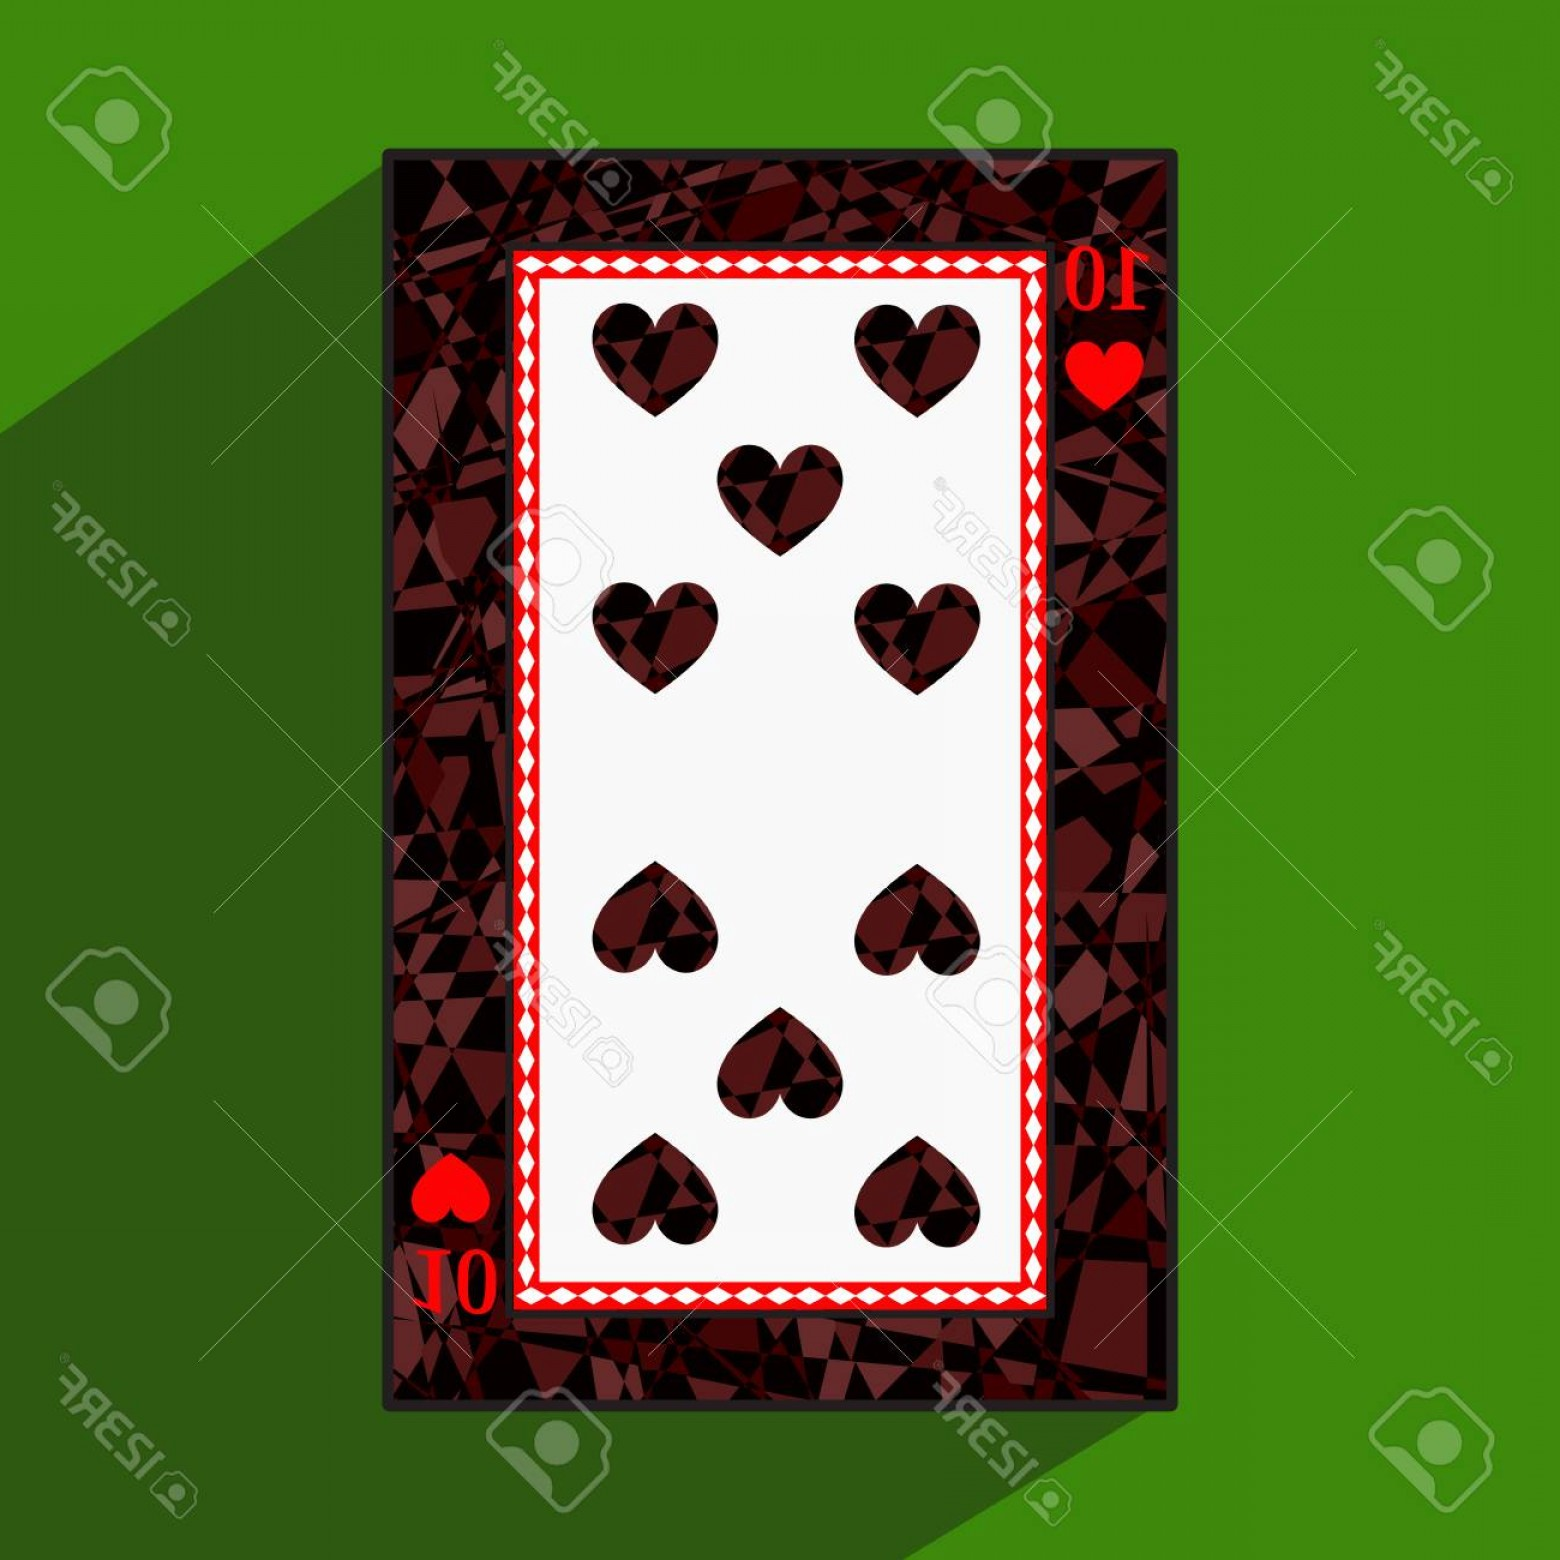 10 Playing Card Vector: Photostock Vector Playing Card The Icon Picture Is Easy Heart Ten About Dark Region Boundary A Vector Illustration